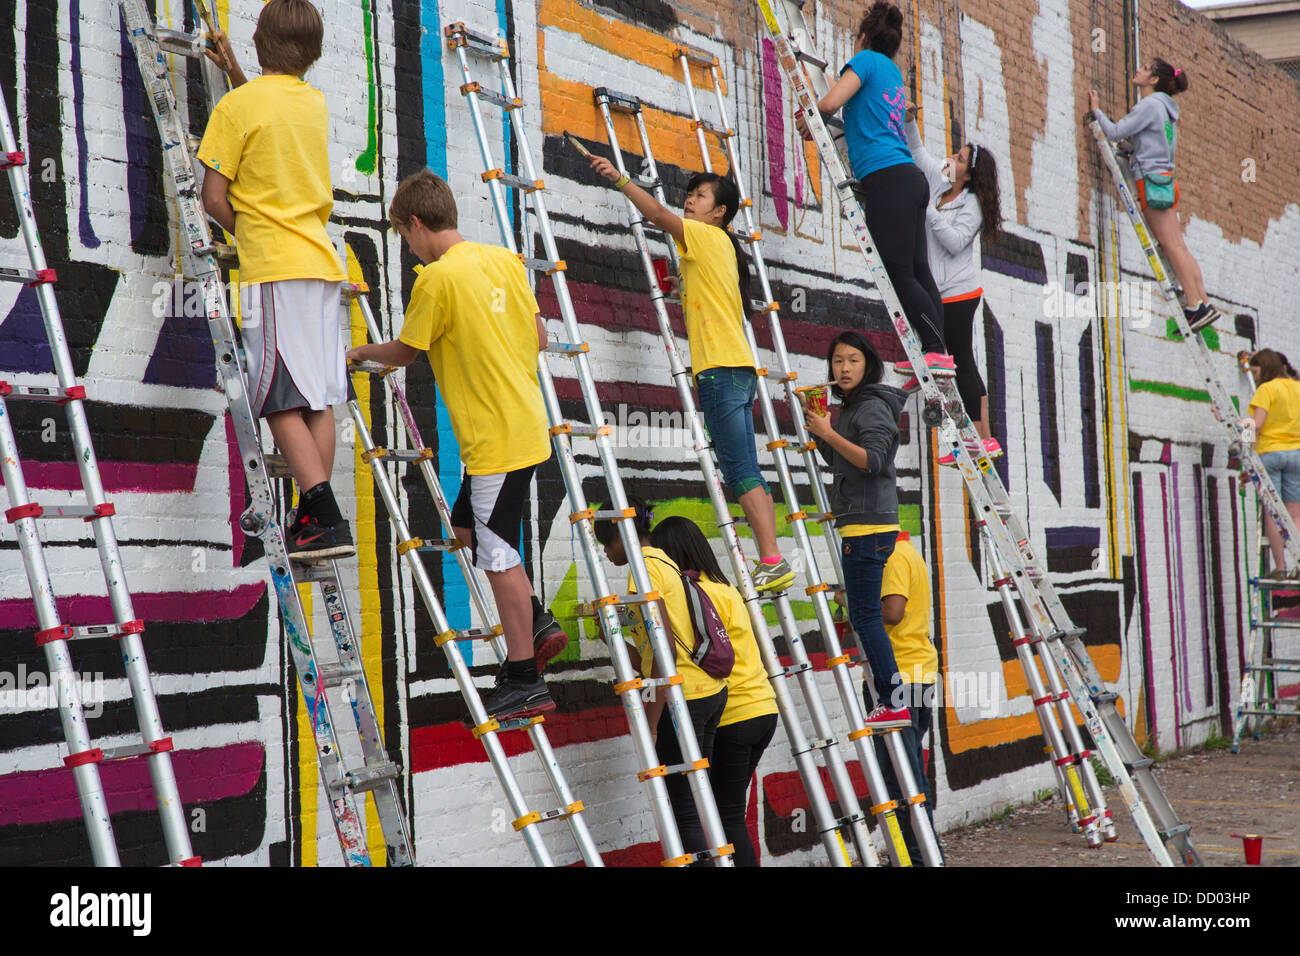 High School Volunteers Paint a Wall - Stock Image